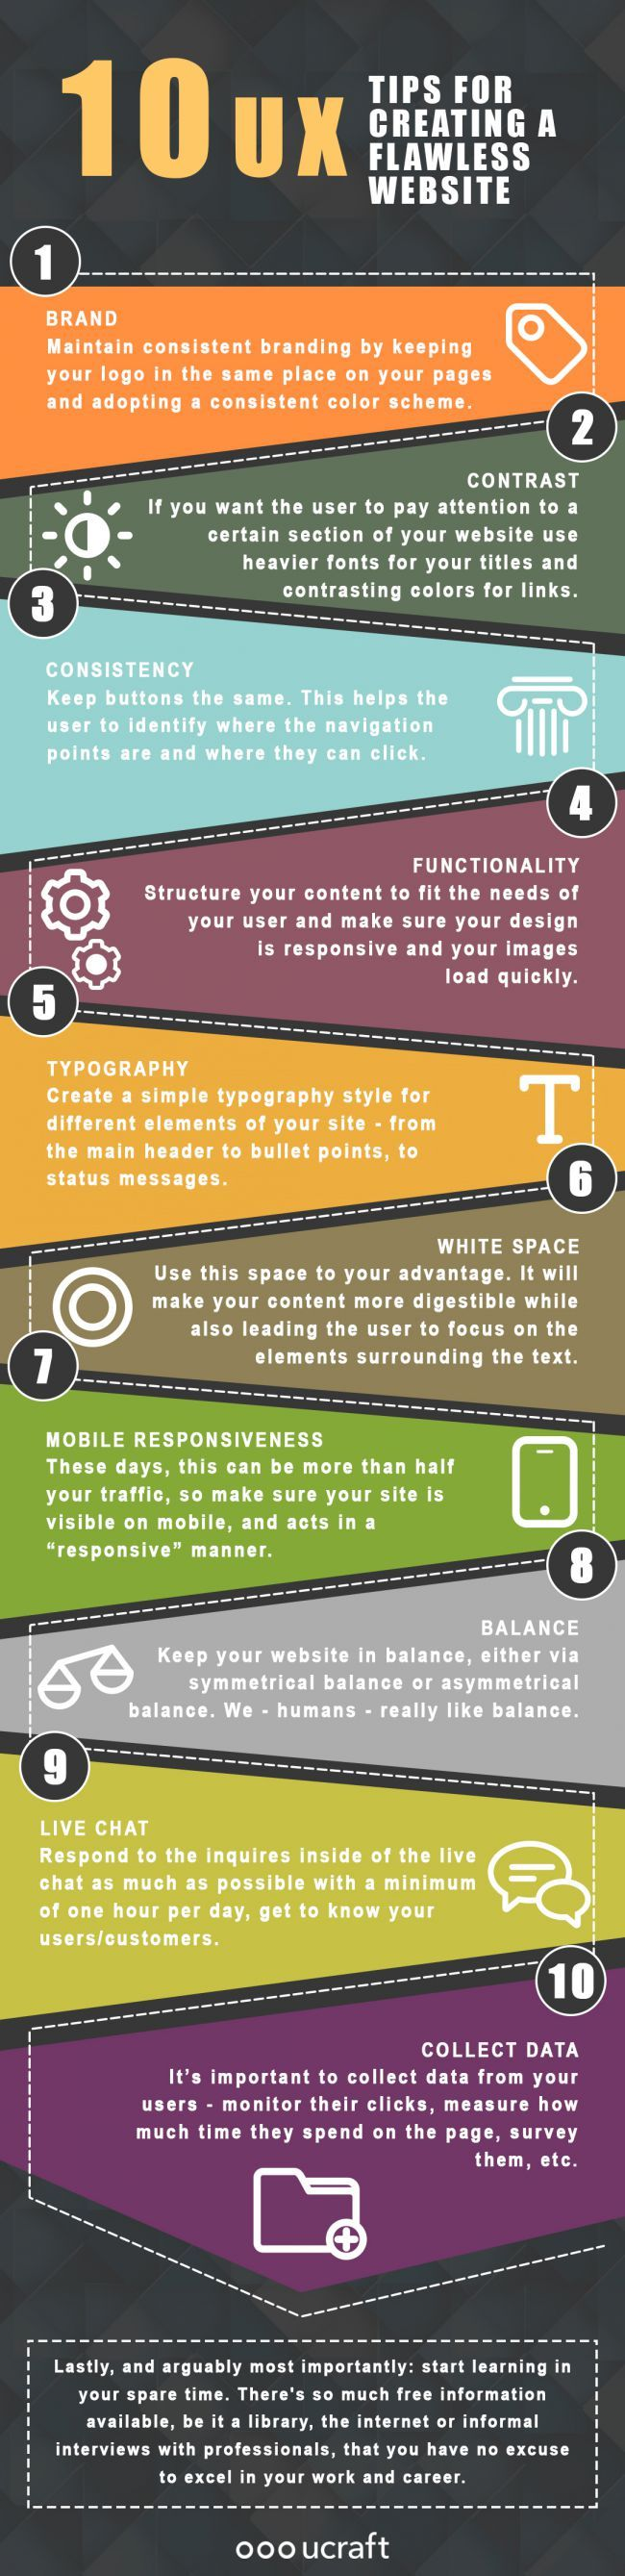 10 User Experience Tips To Create A Flawless Website Infographic Web Design Tips Business Infographic Web Design Company